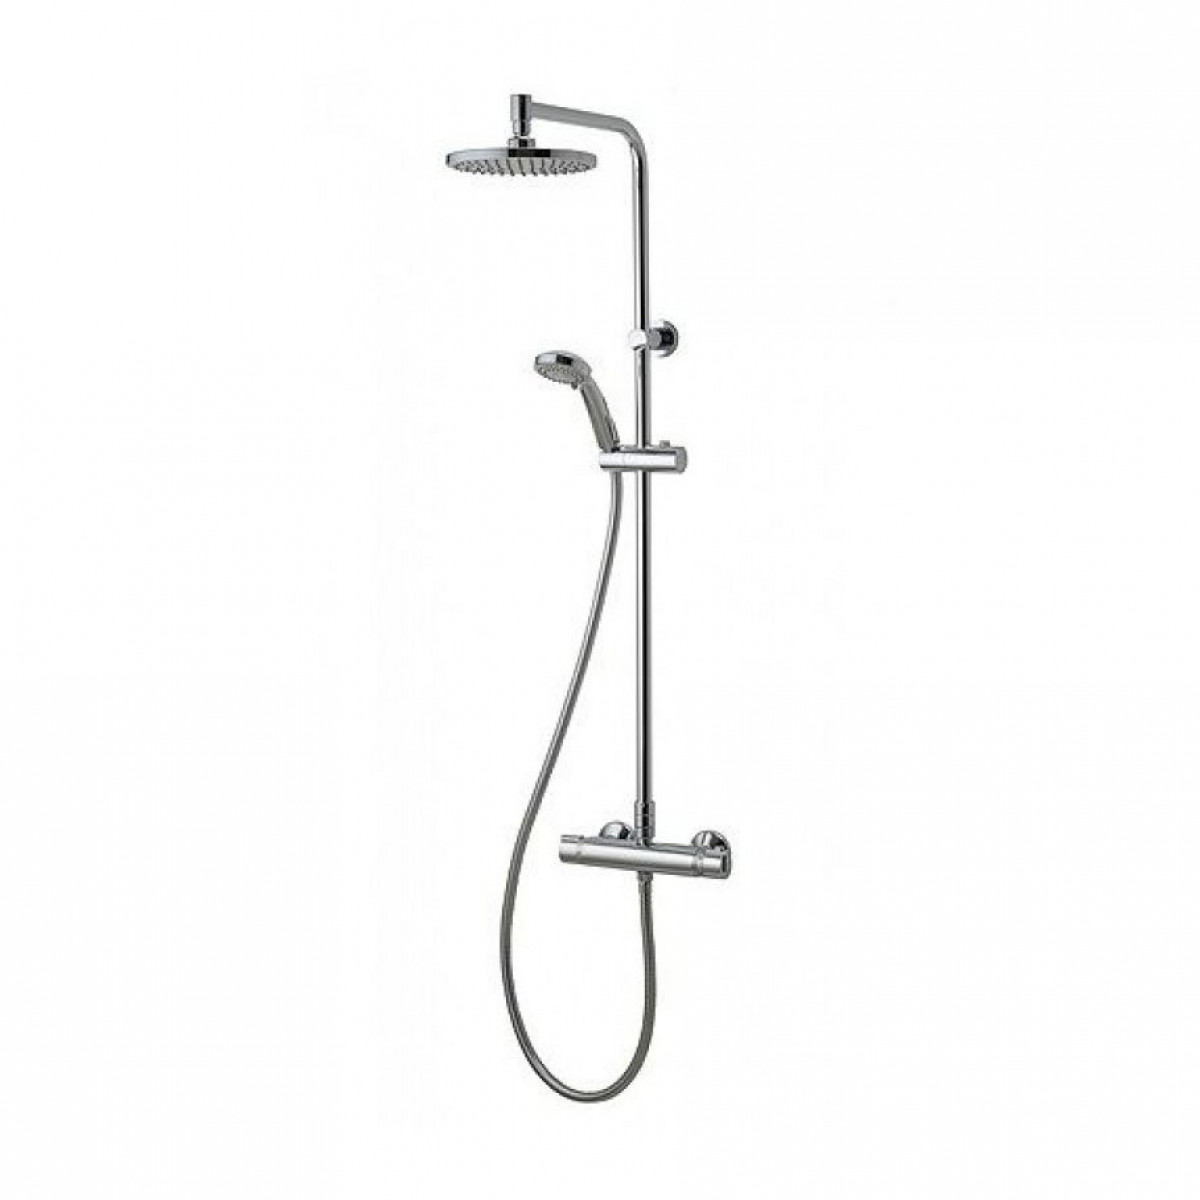 Aqualisa Midas Plus Thermostatic Mixer Shower With Fixed